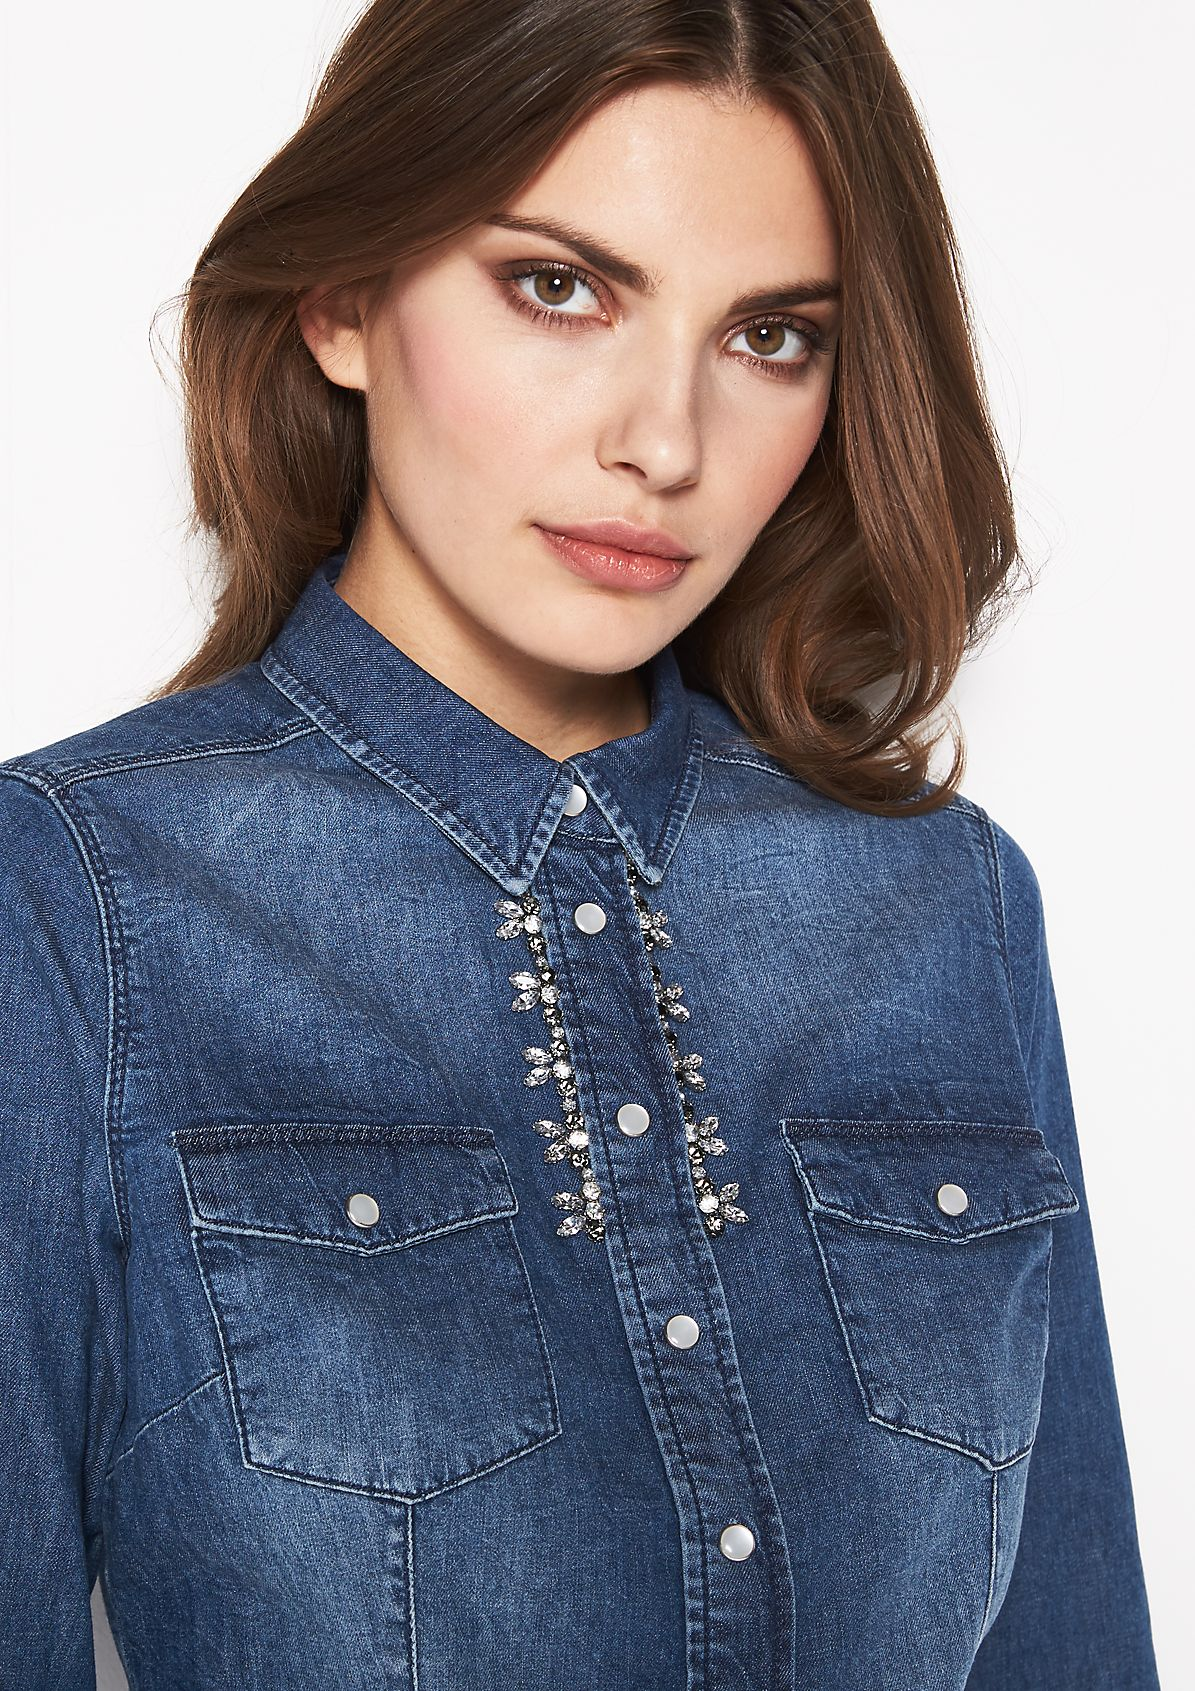 Denim blouse in a vintage look with glittery gemstone decorations from comma